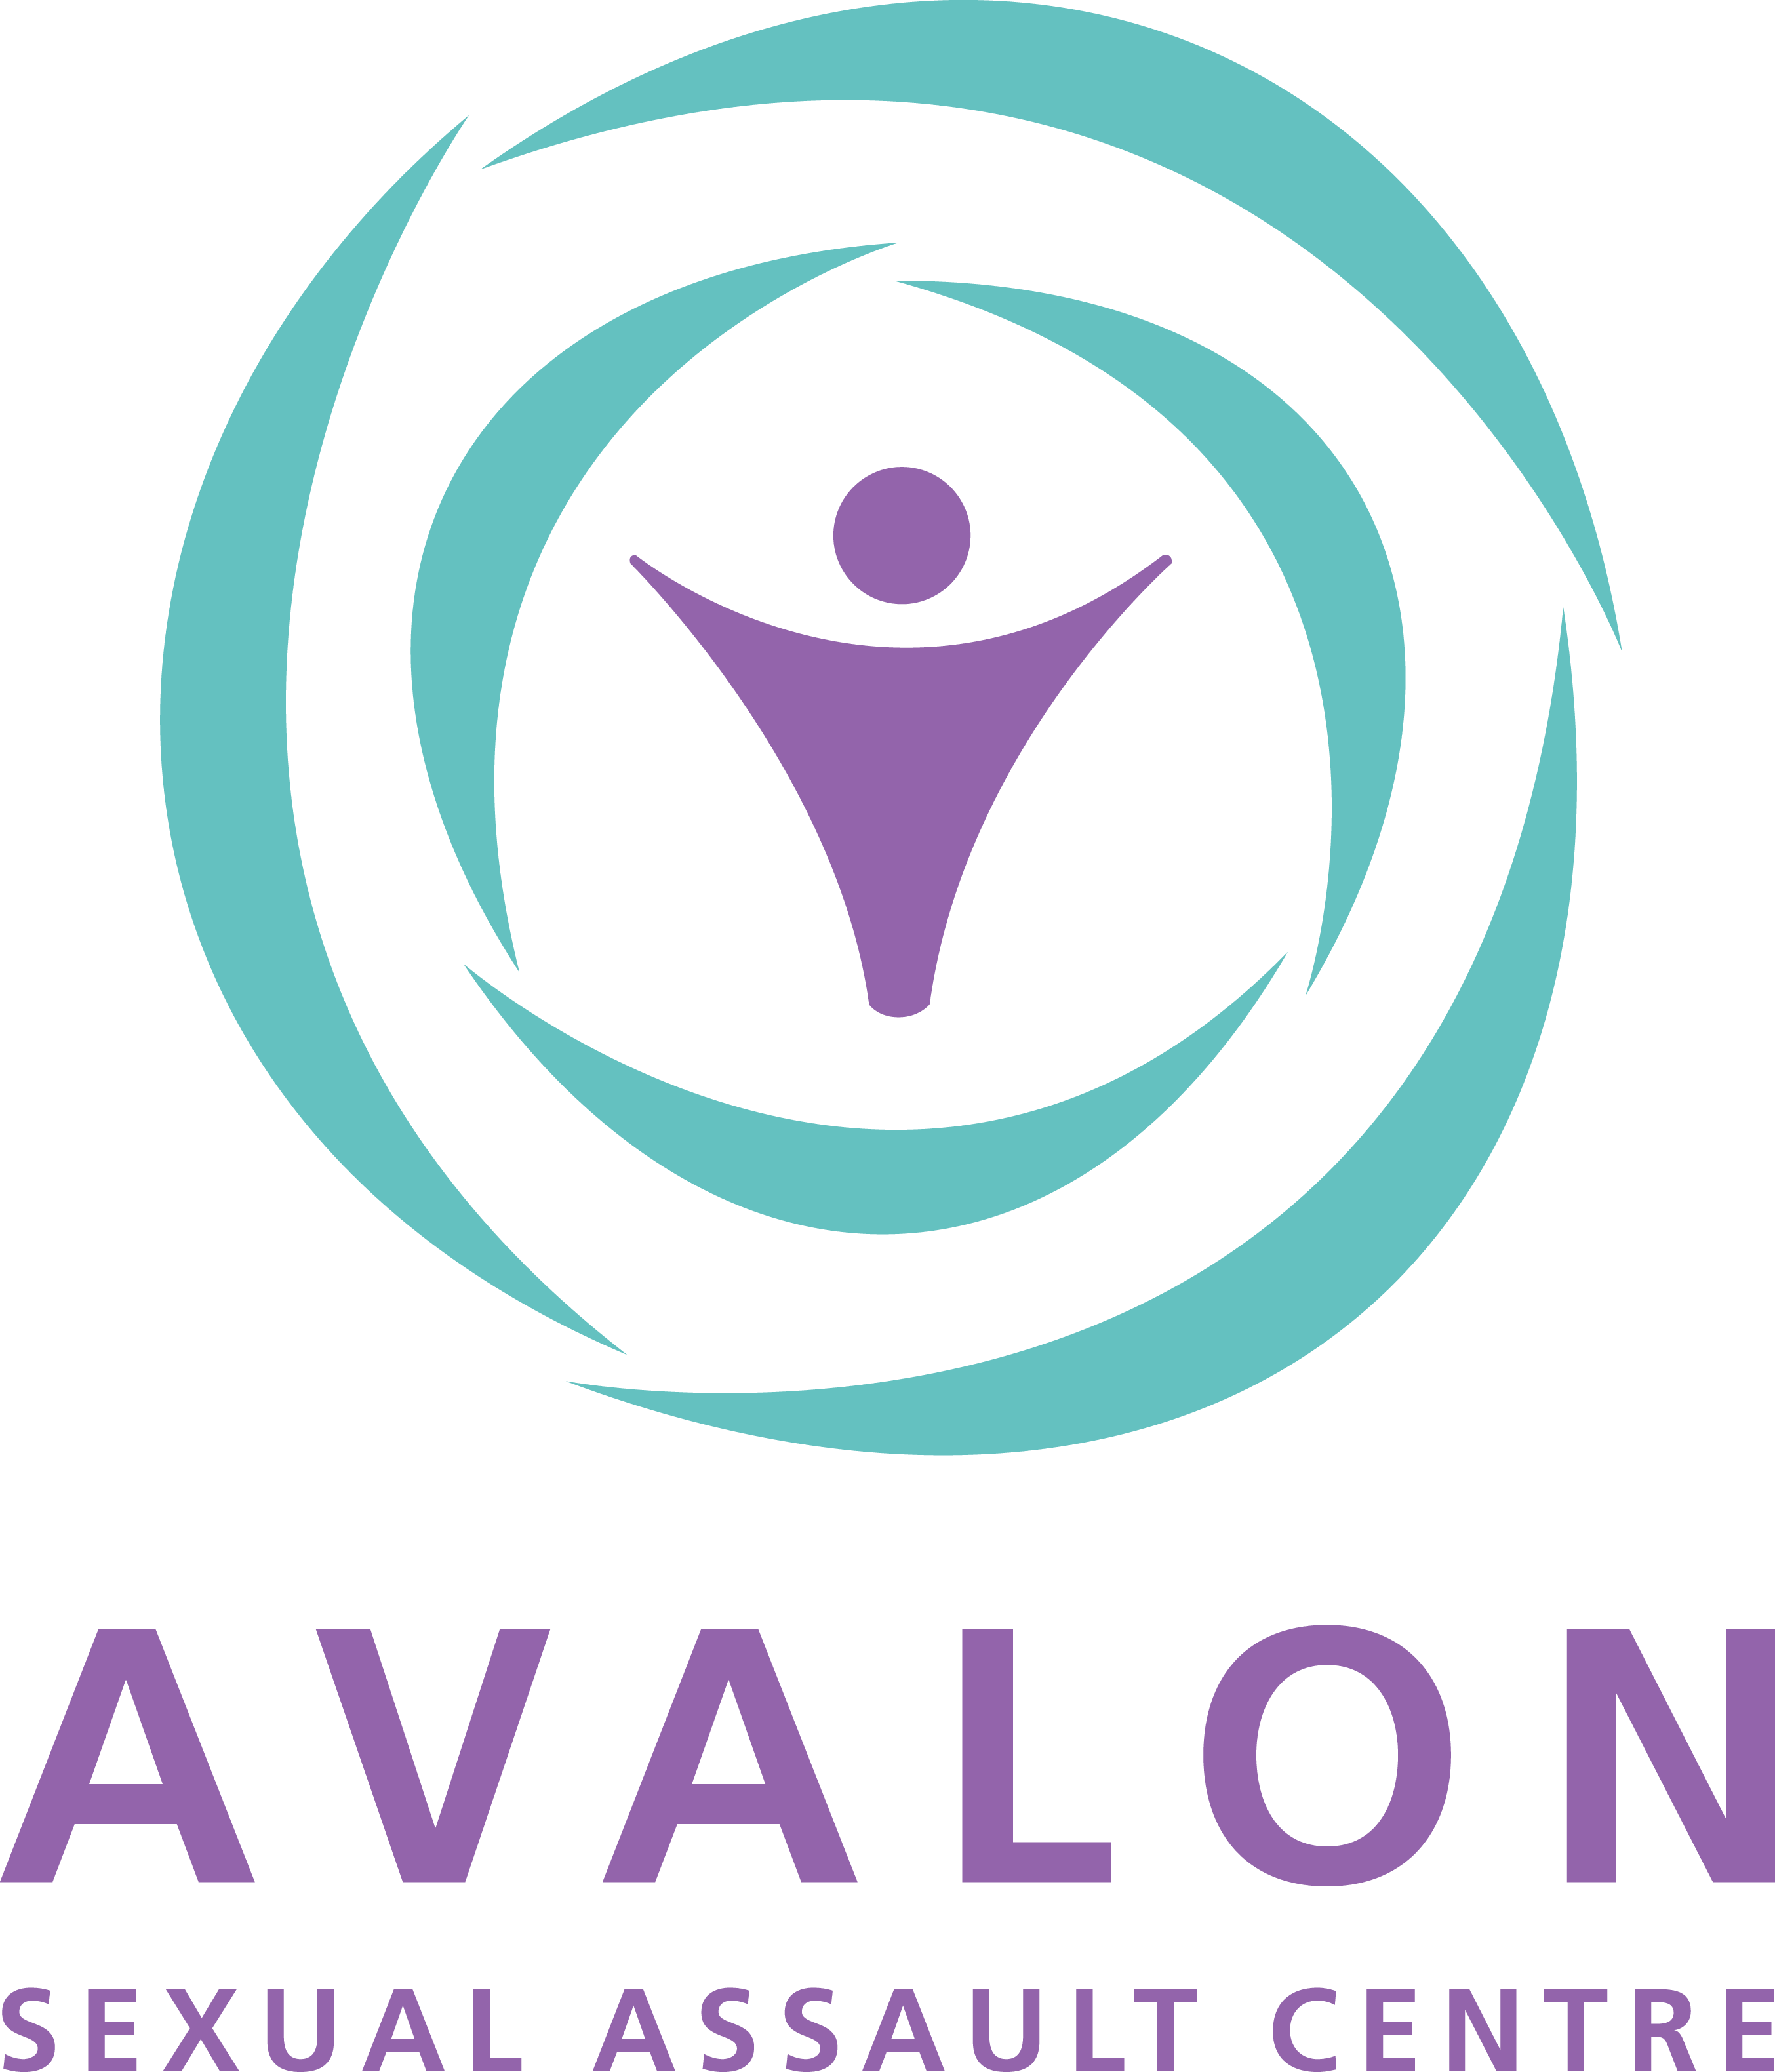 Avalon Sexual Assault Centre Logo